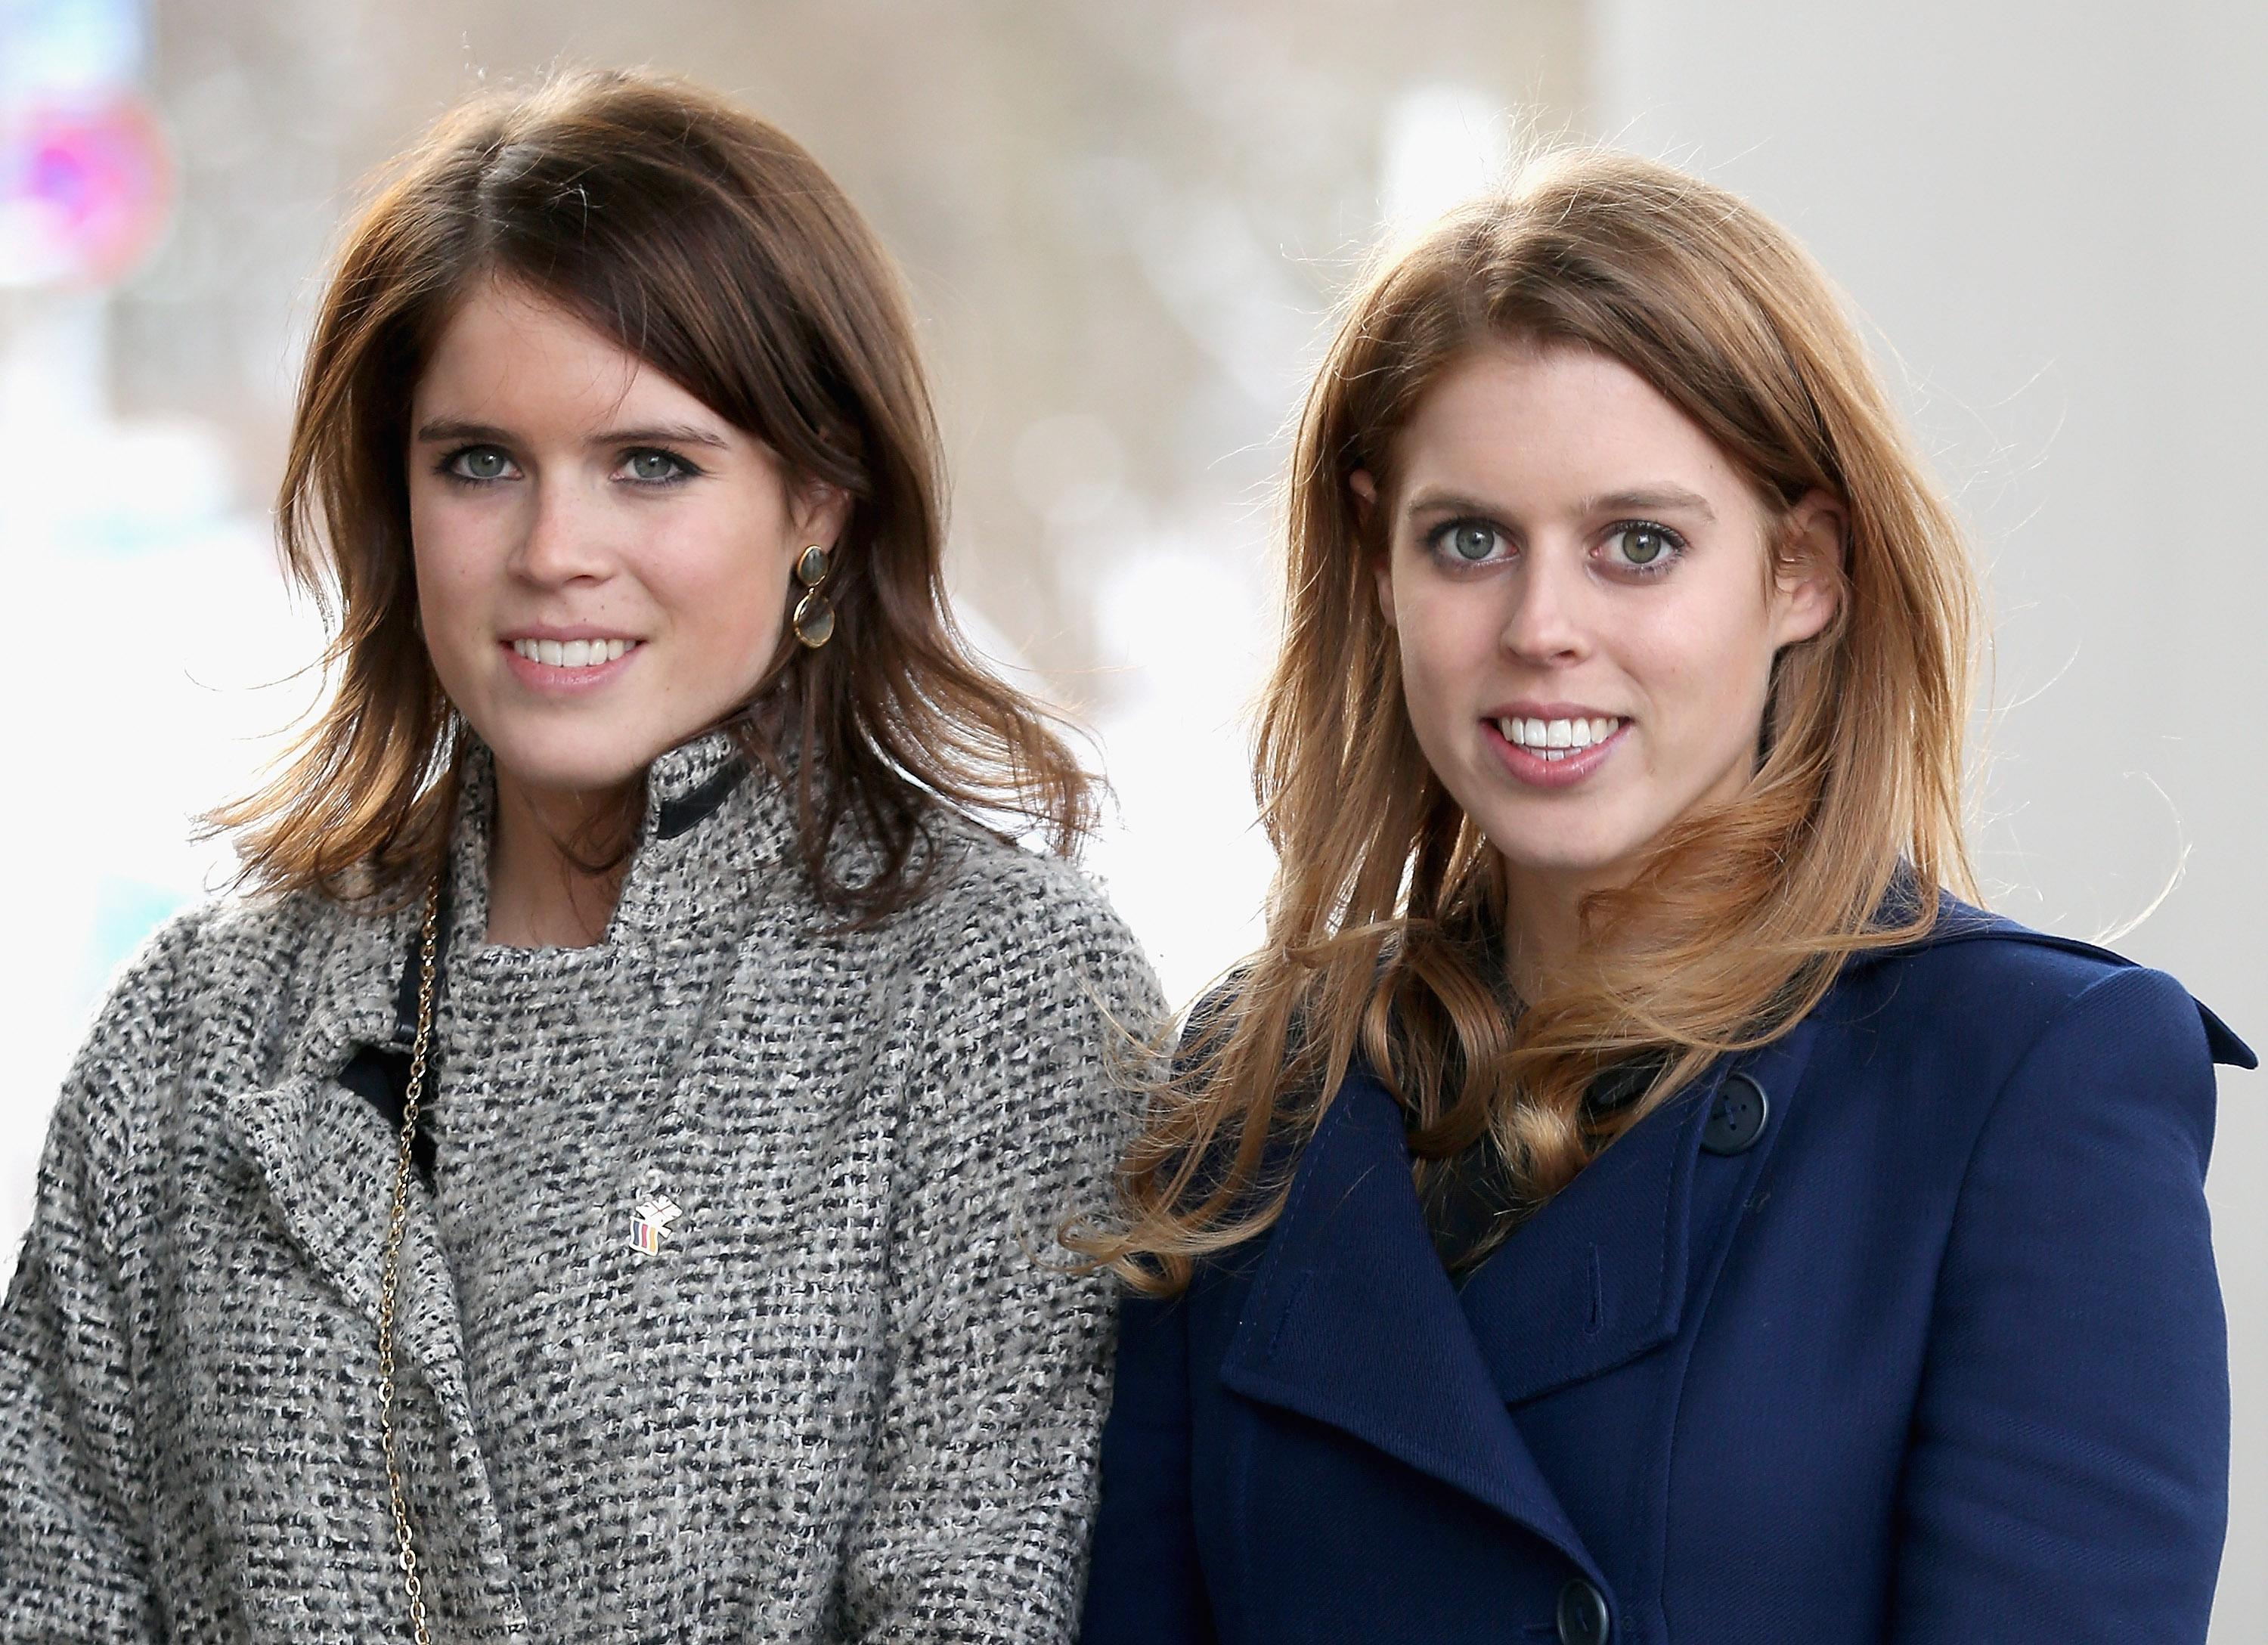 color princess beatrice eyes